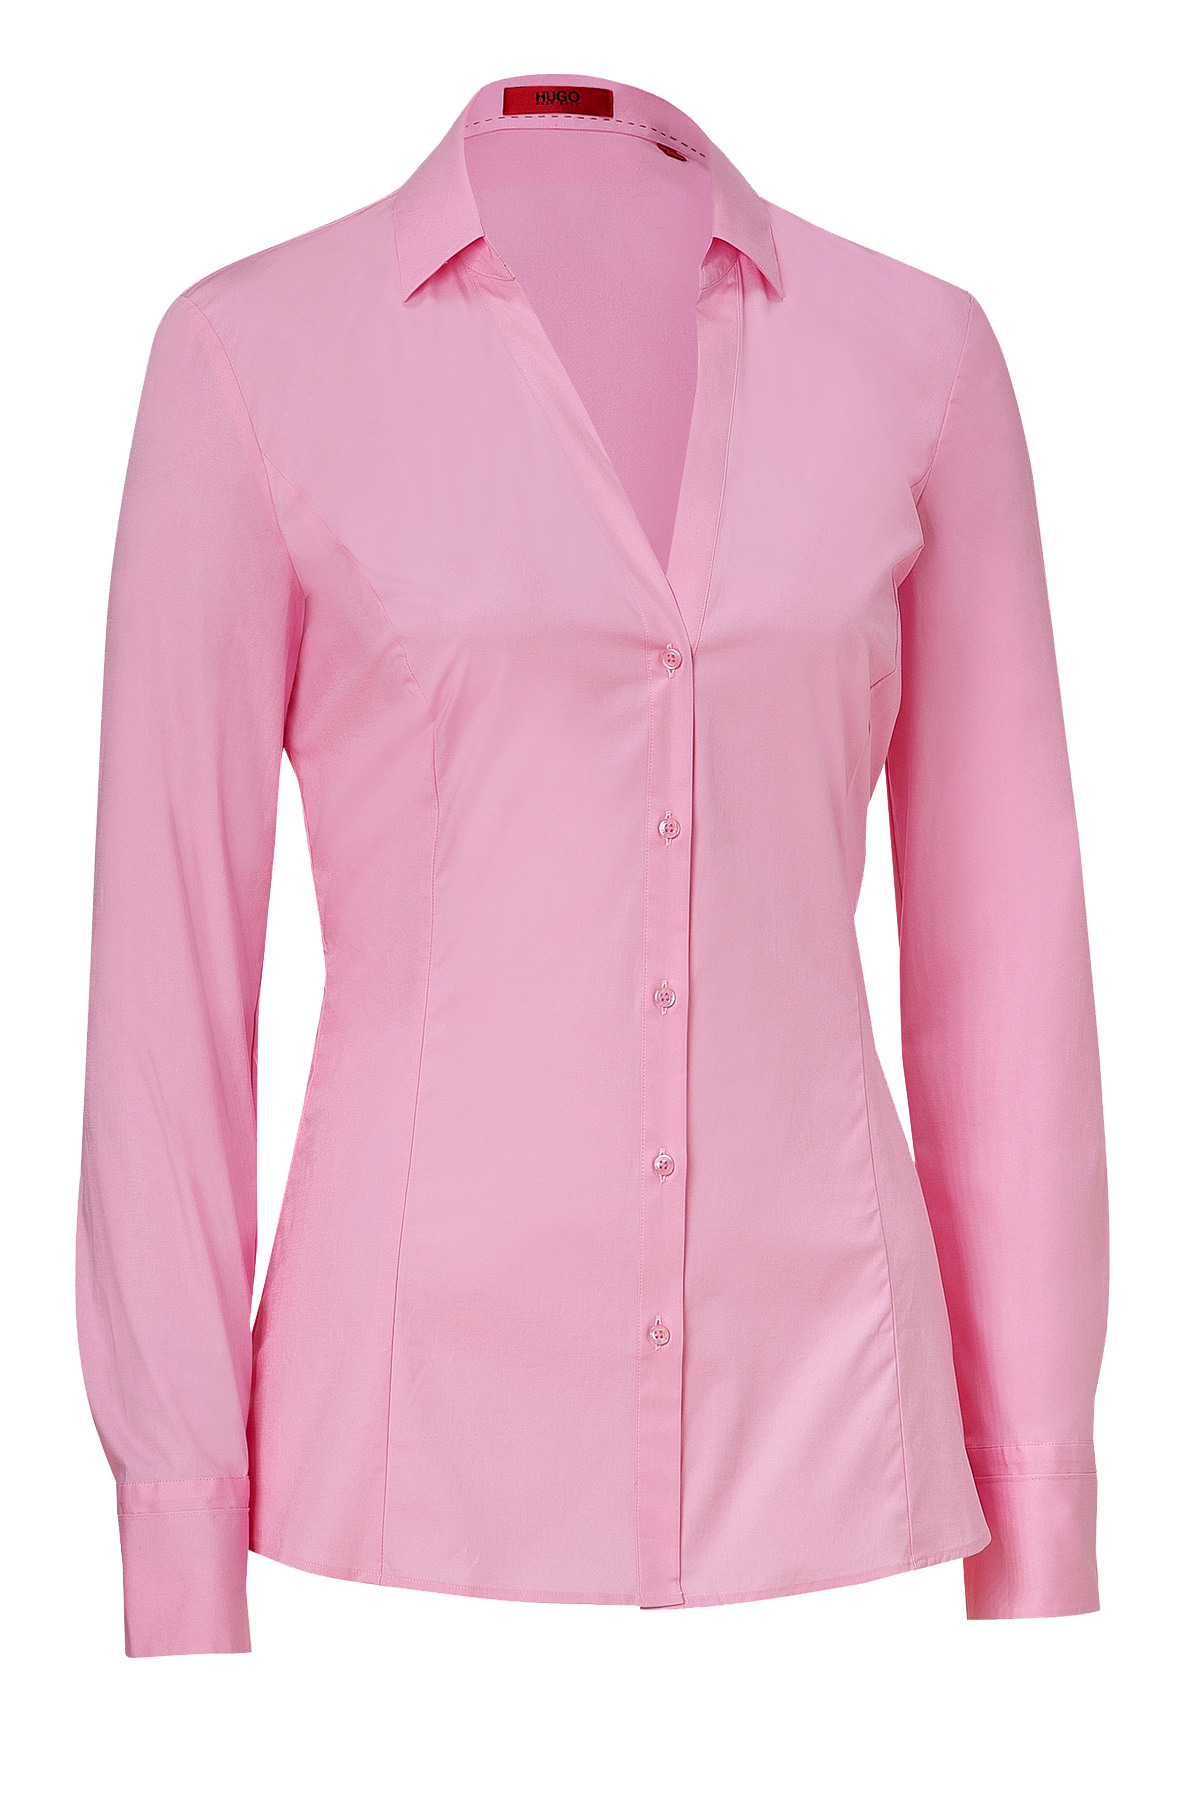 Free shipping and returns on Women's Pink Tops at autoebookj1.ga